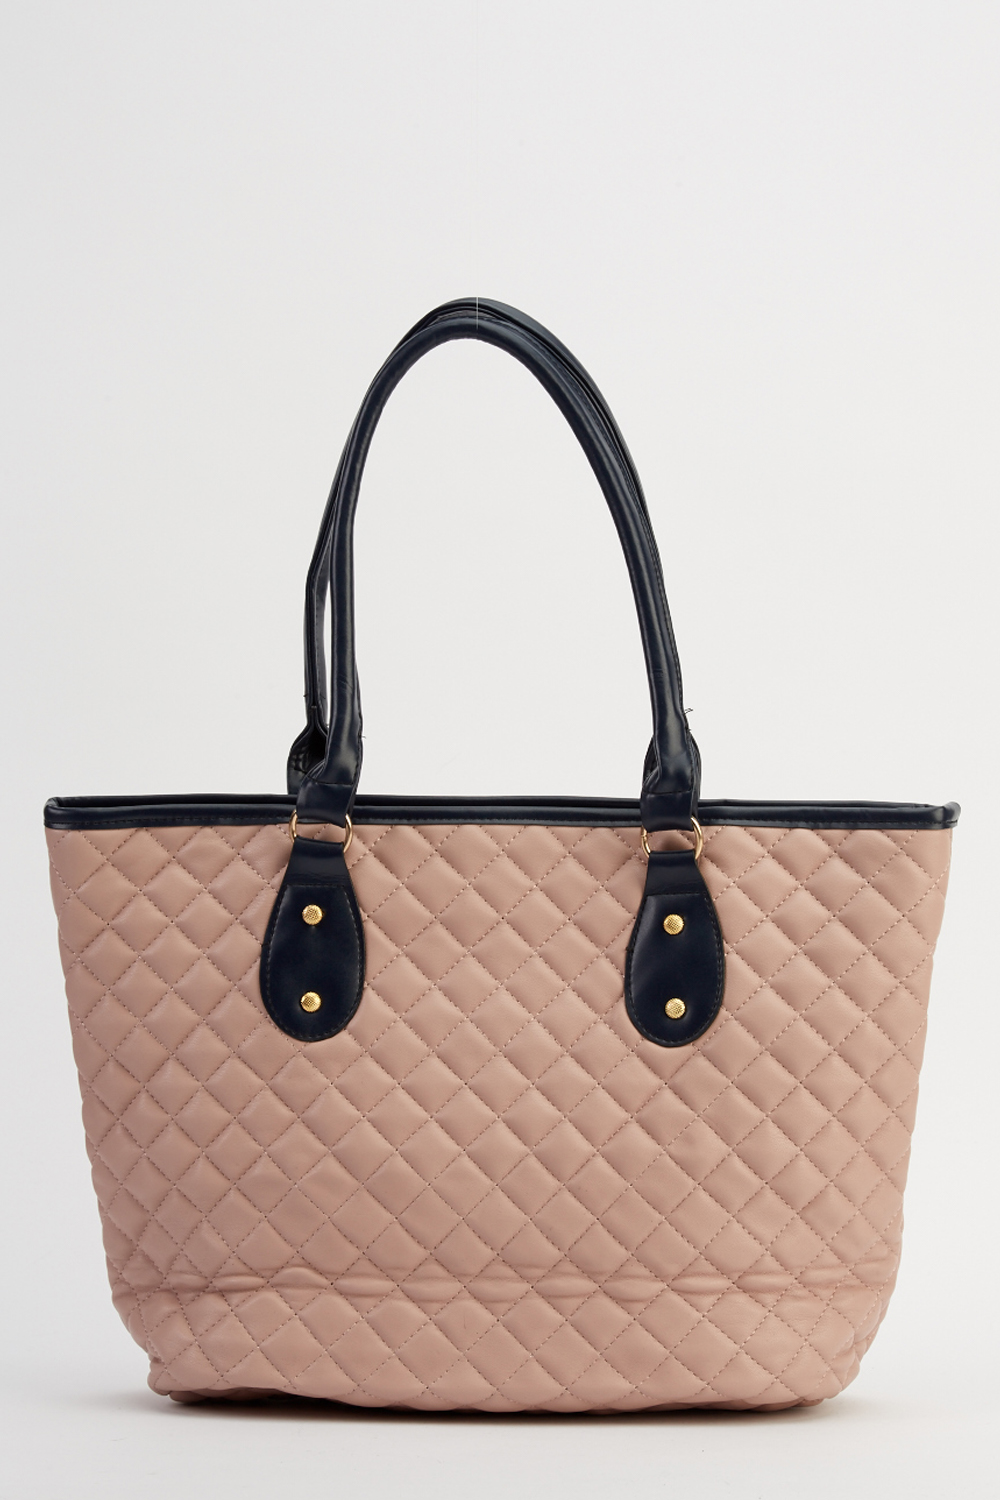 of amazon ebay p gilman bag dma women s quilted tote g quilt by womens guess picture